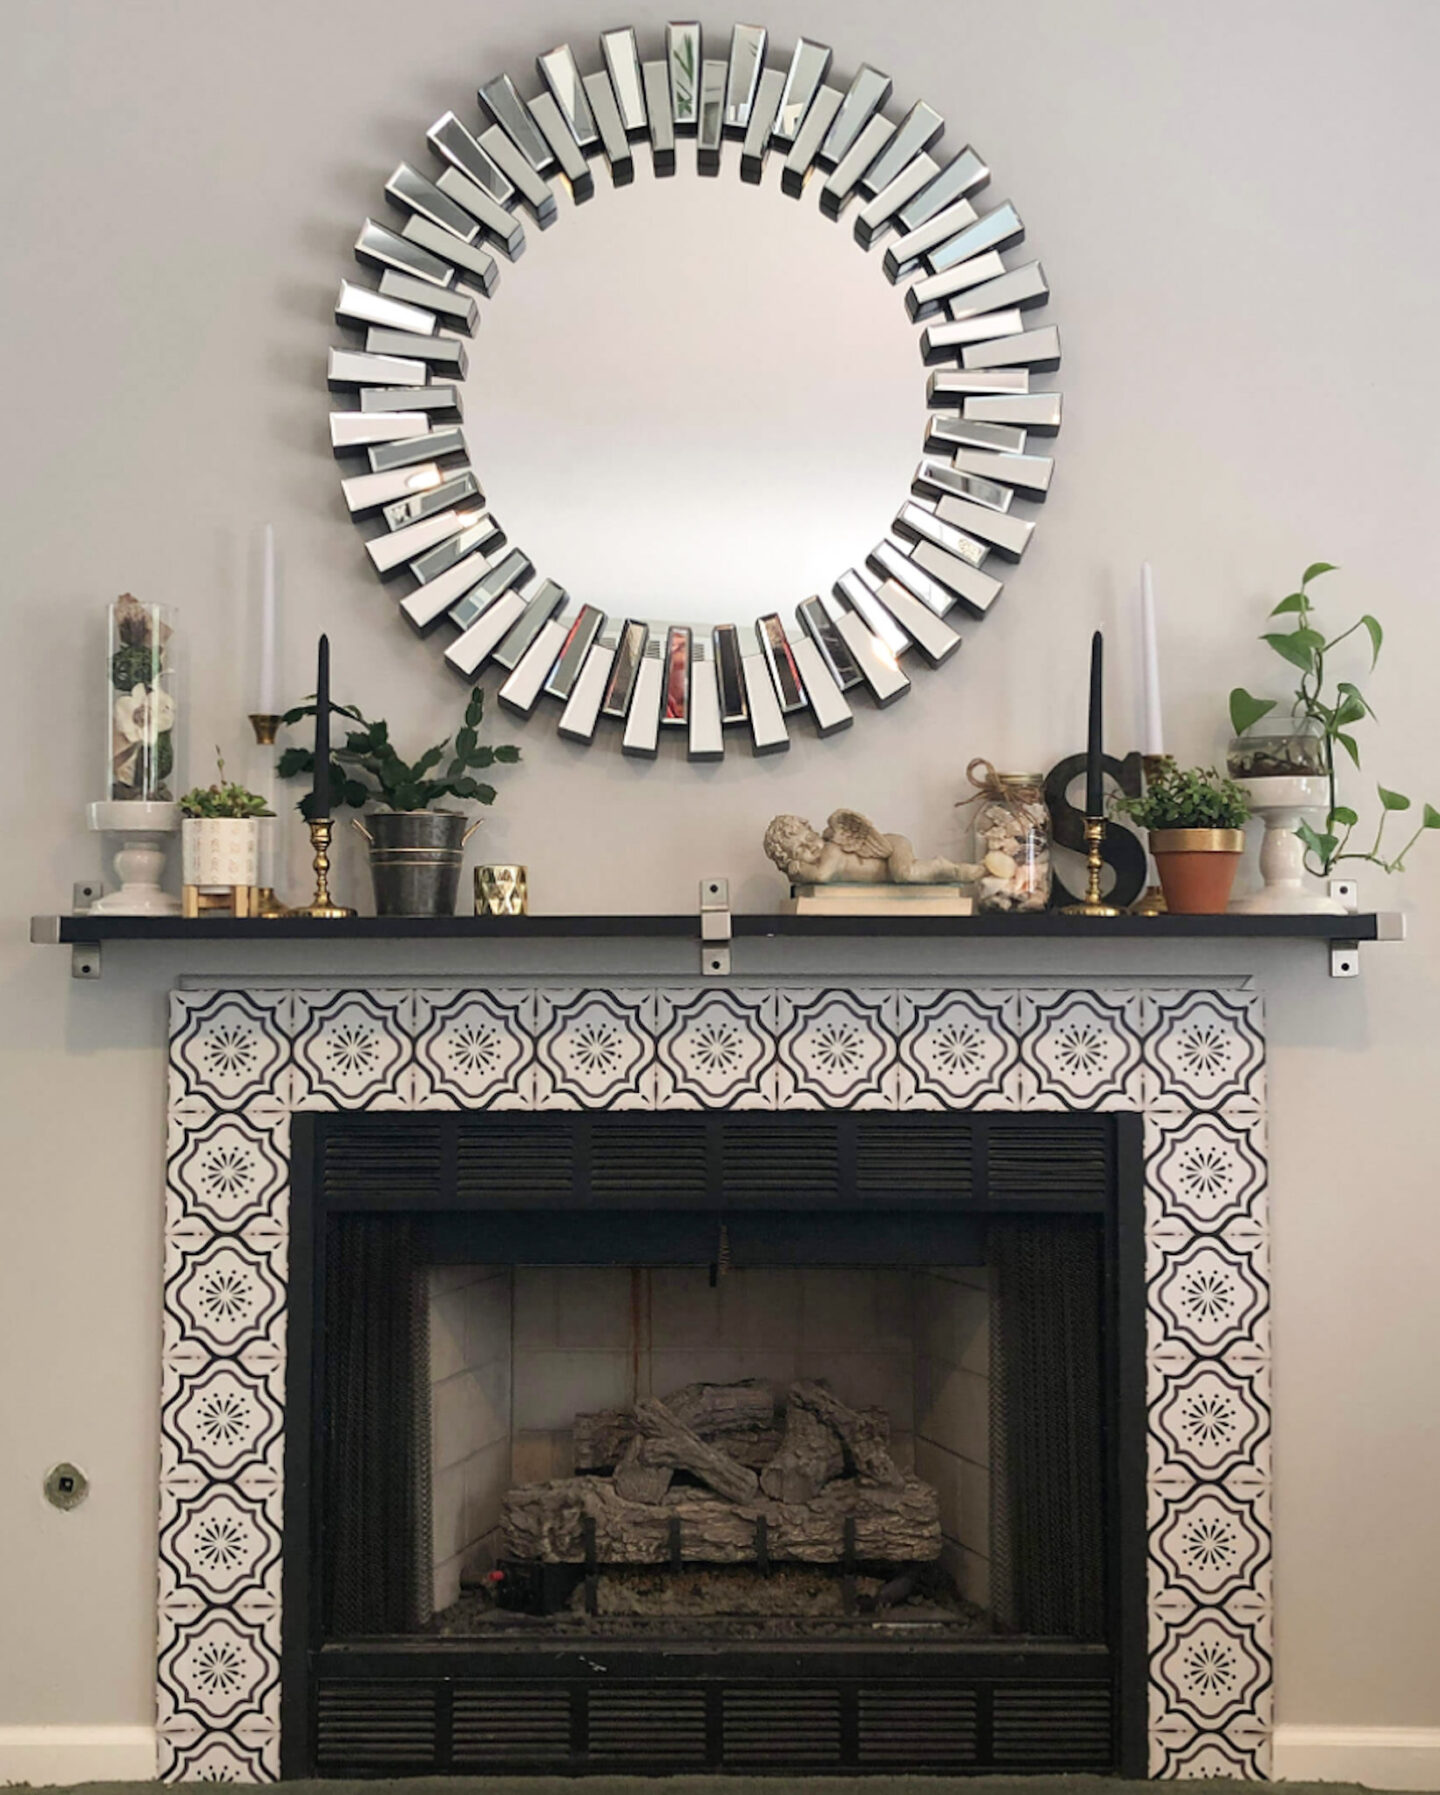 finished fireplace makeover pic